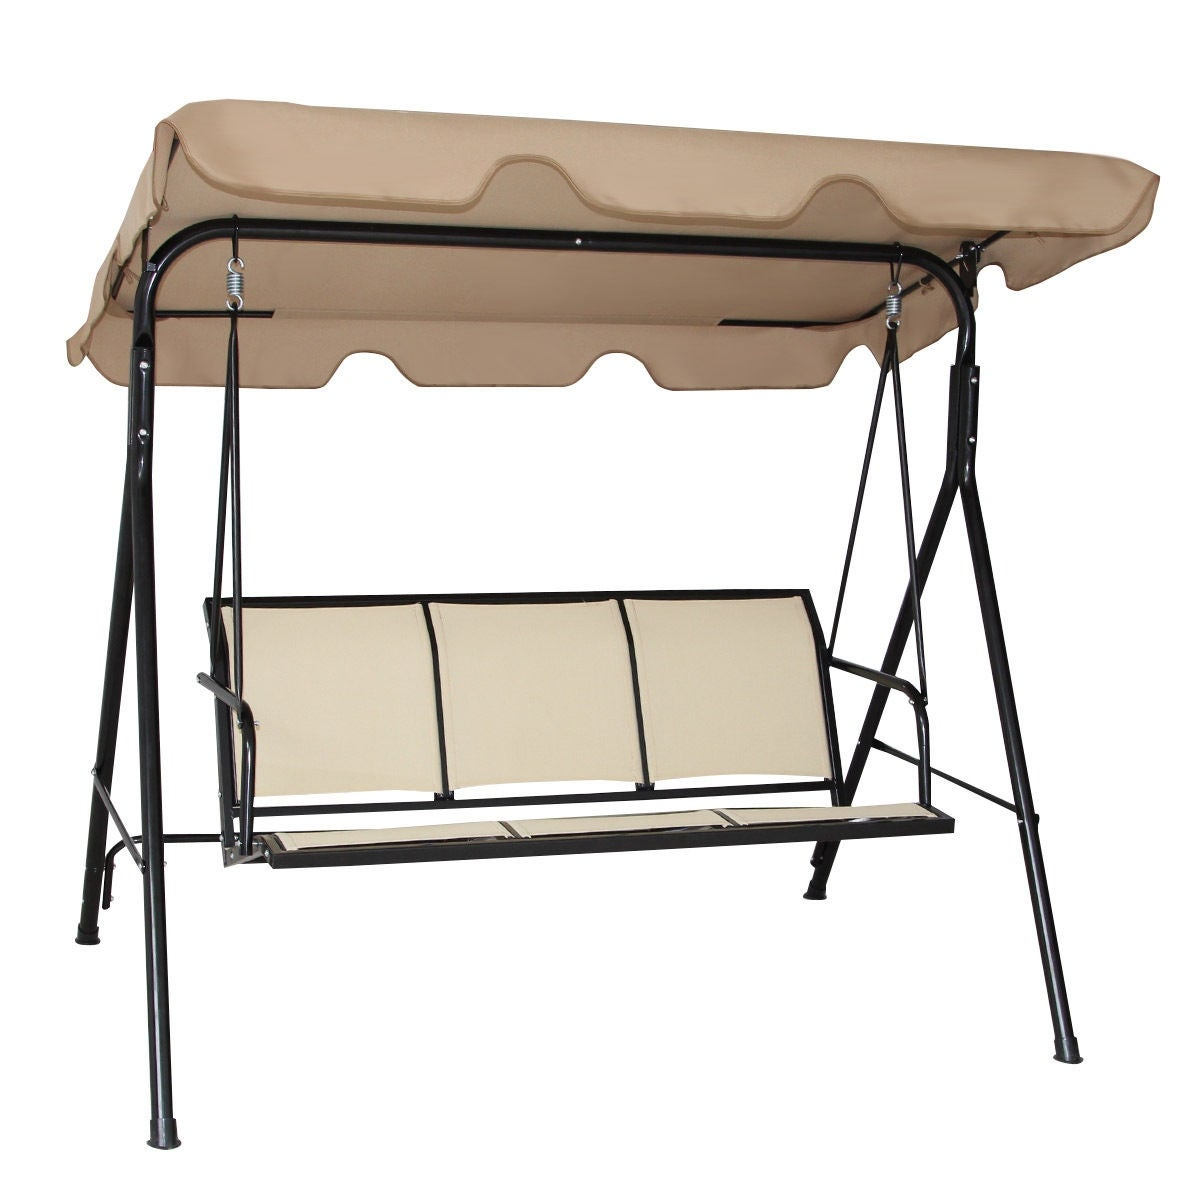 person seater canopy shelter patio marquee garden beige dp gazebo mesh chair swing outsunny co side walls amazon with bed hammock bench uk tent